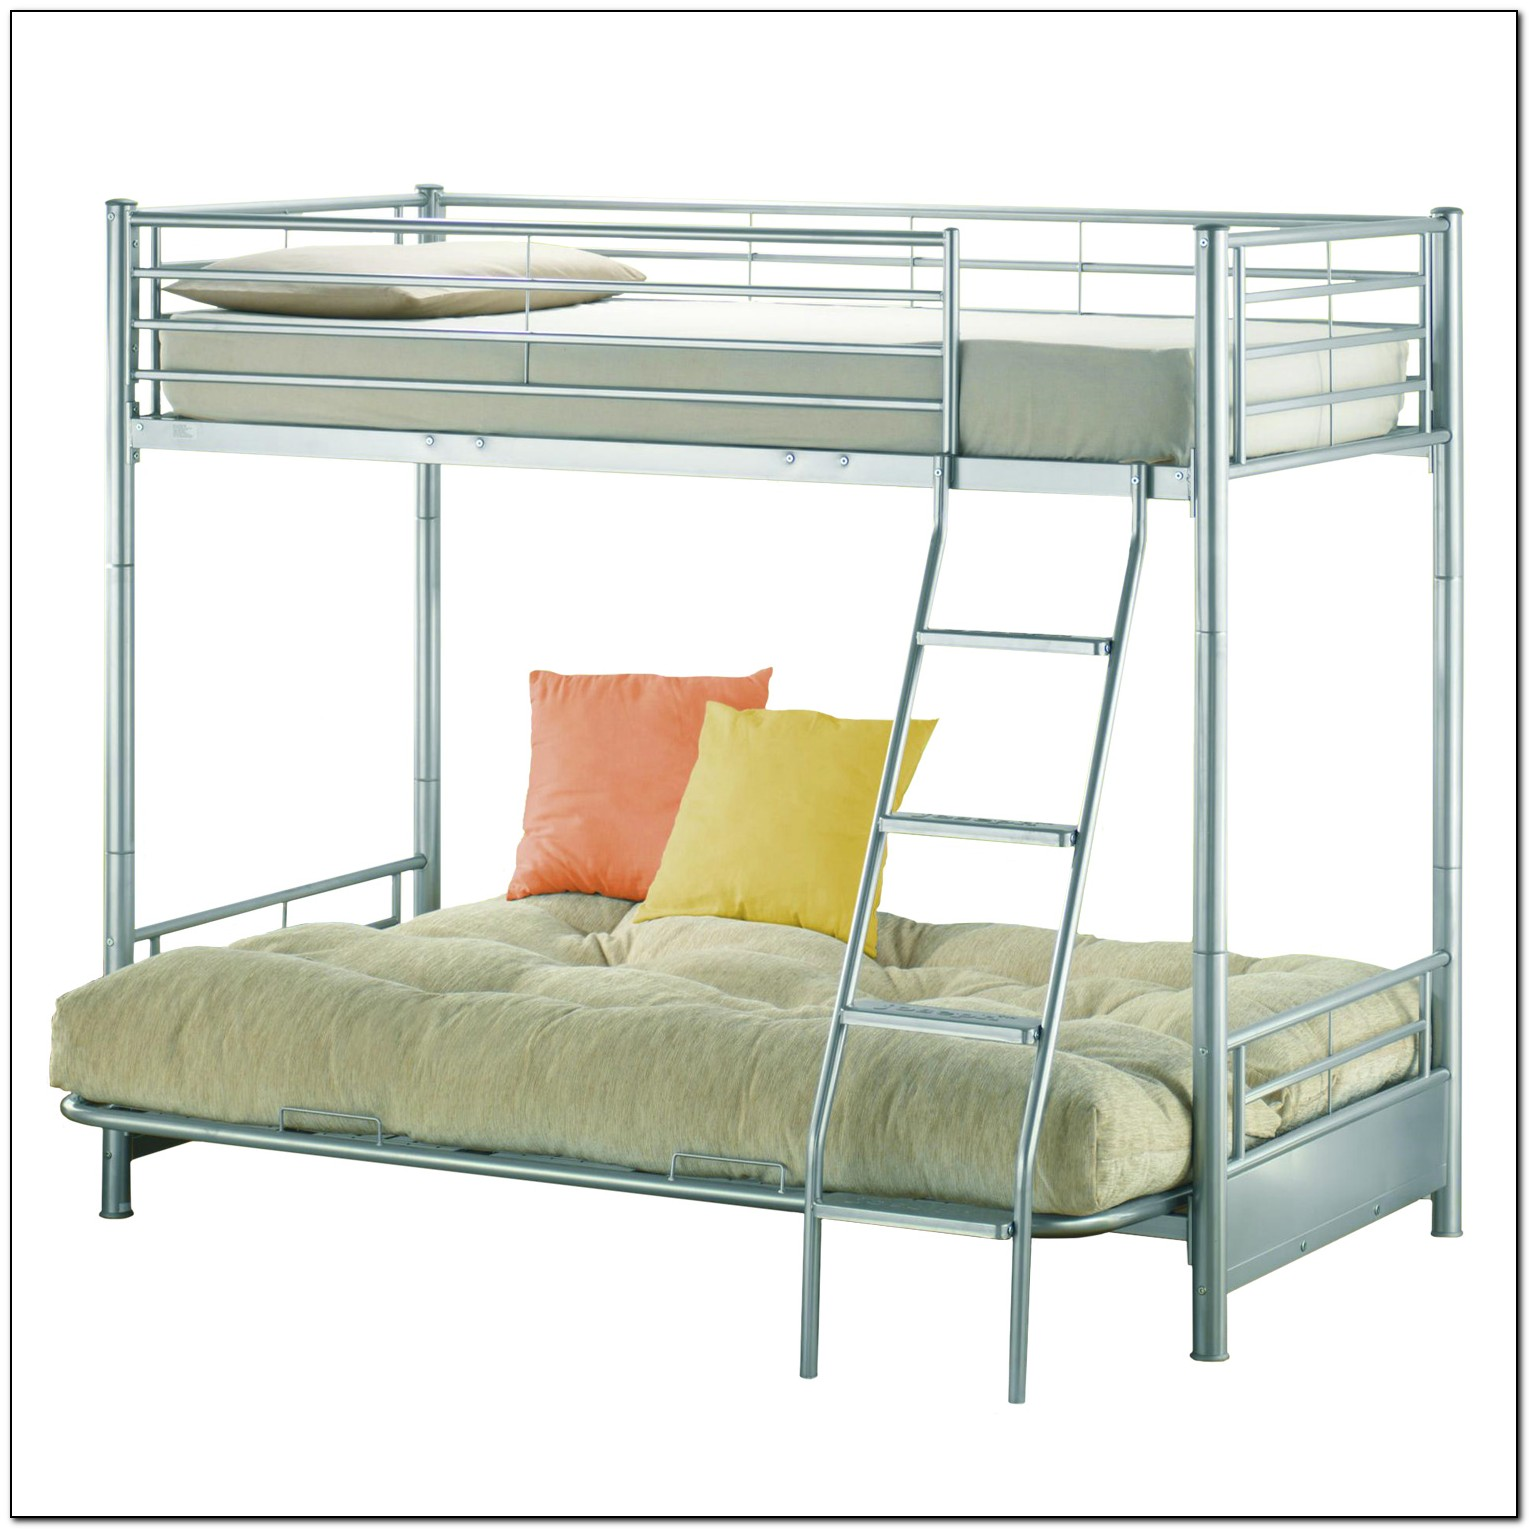 Futon Bunk Beds Uk Download Page Home Design Ideas  : futon bunk beds uk from www.proudarmymoms.org size 1529 x 1529 jpeg 241kB